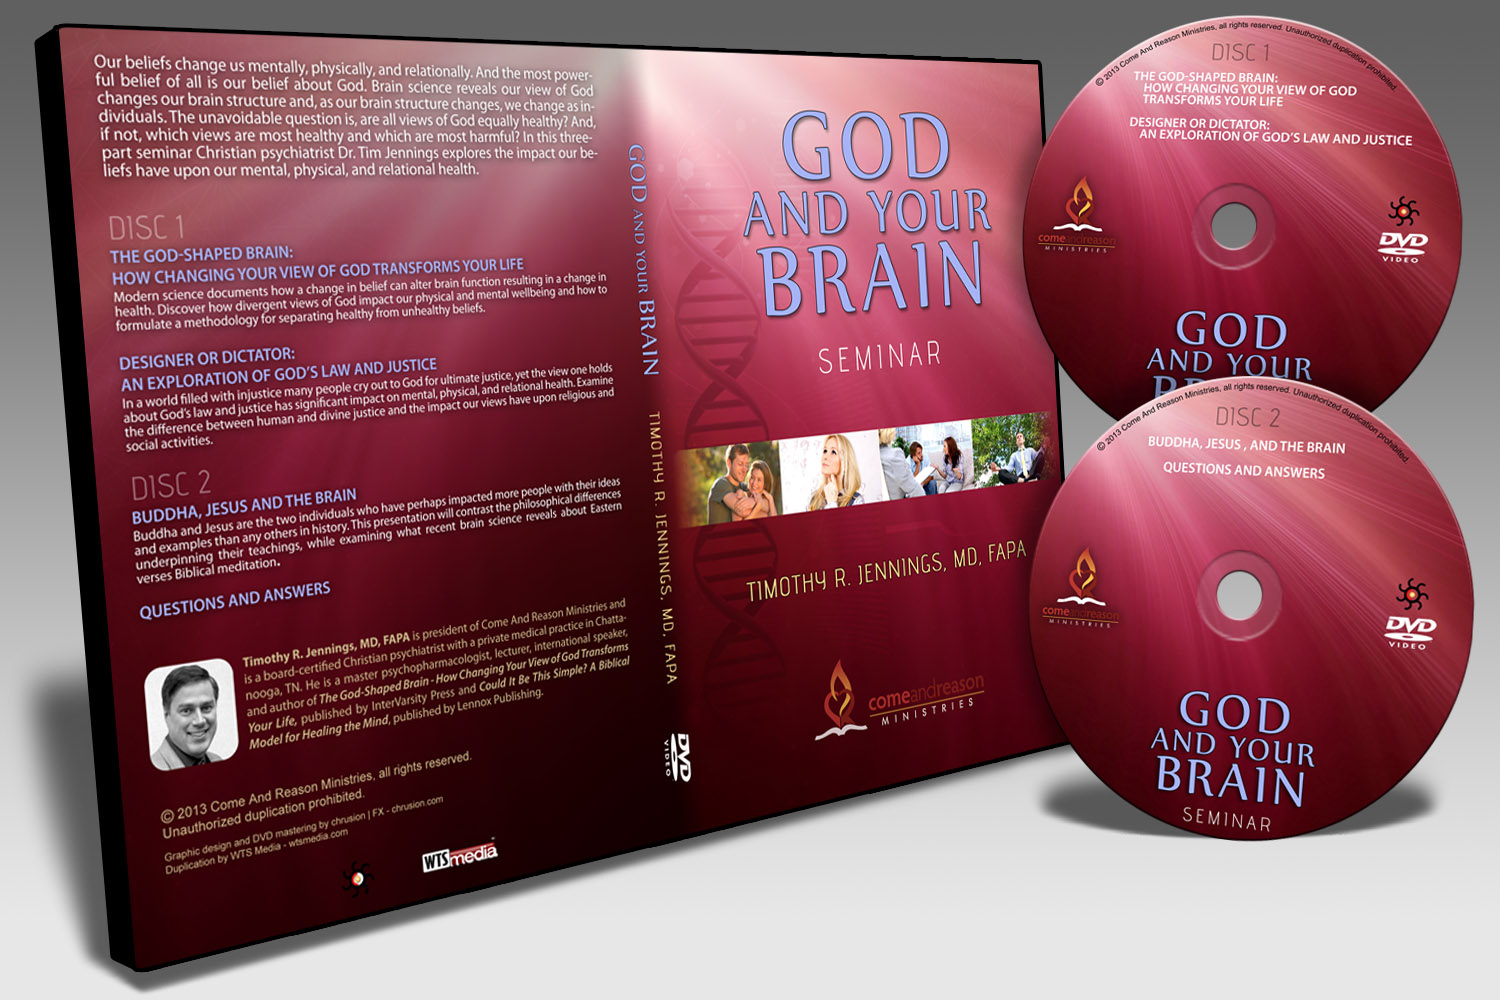 God And Your Brain 3: Buddha, Jesus, and the Brain